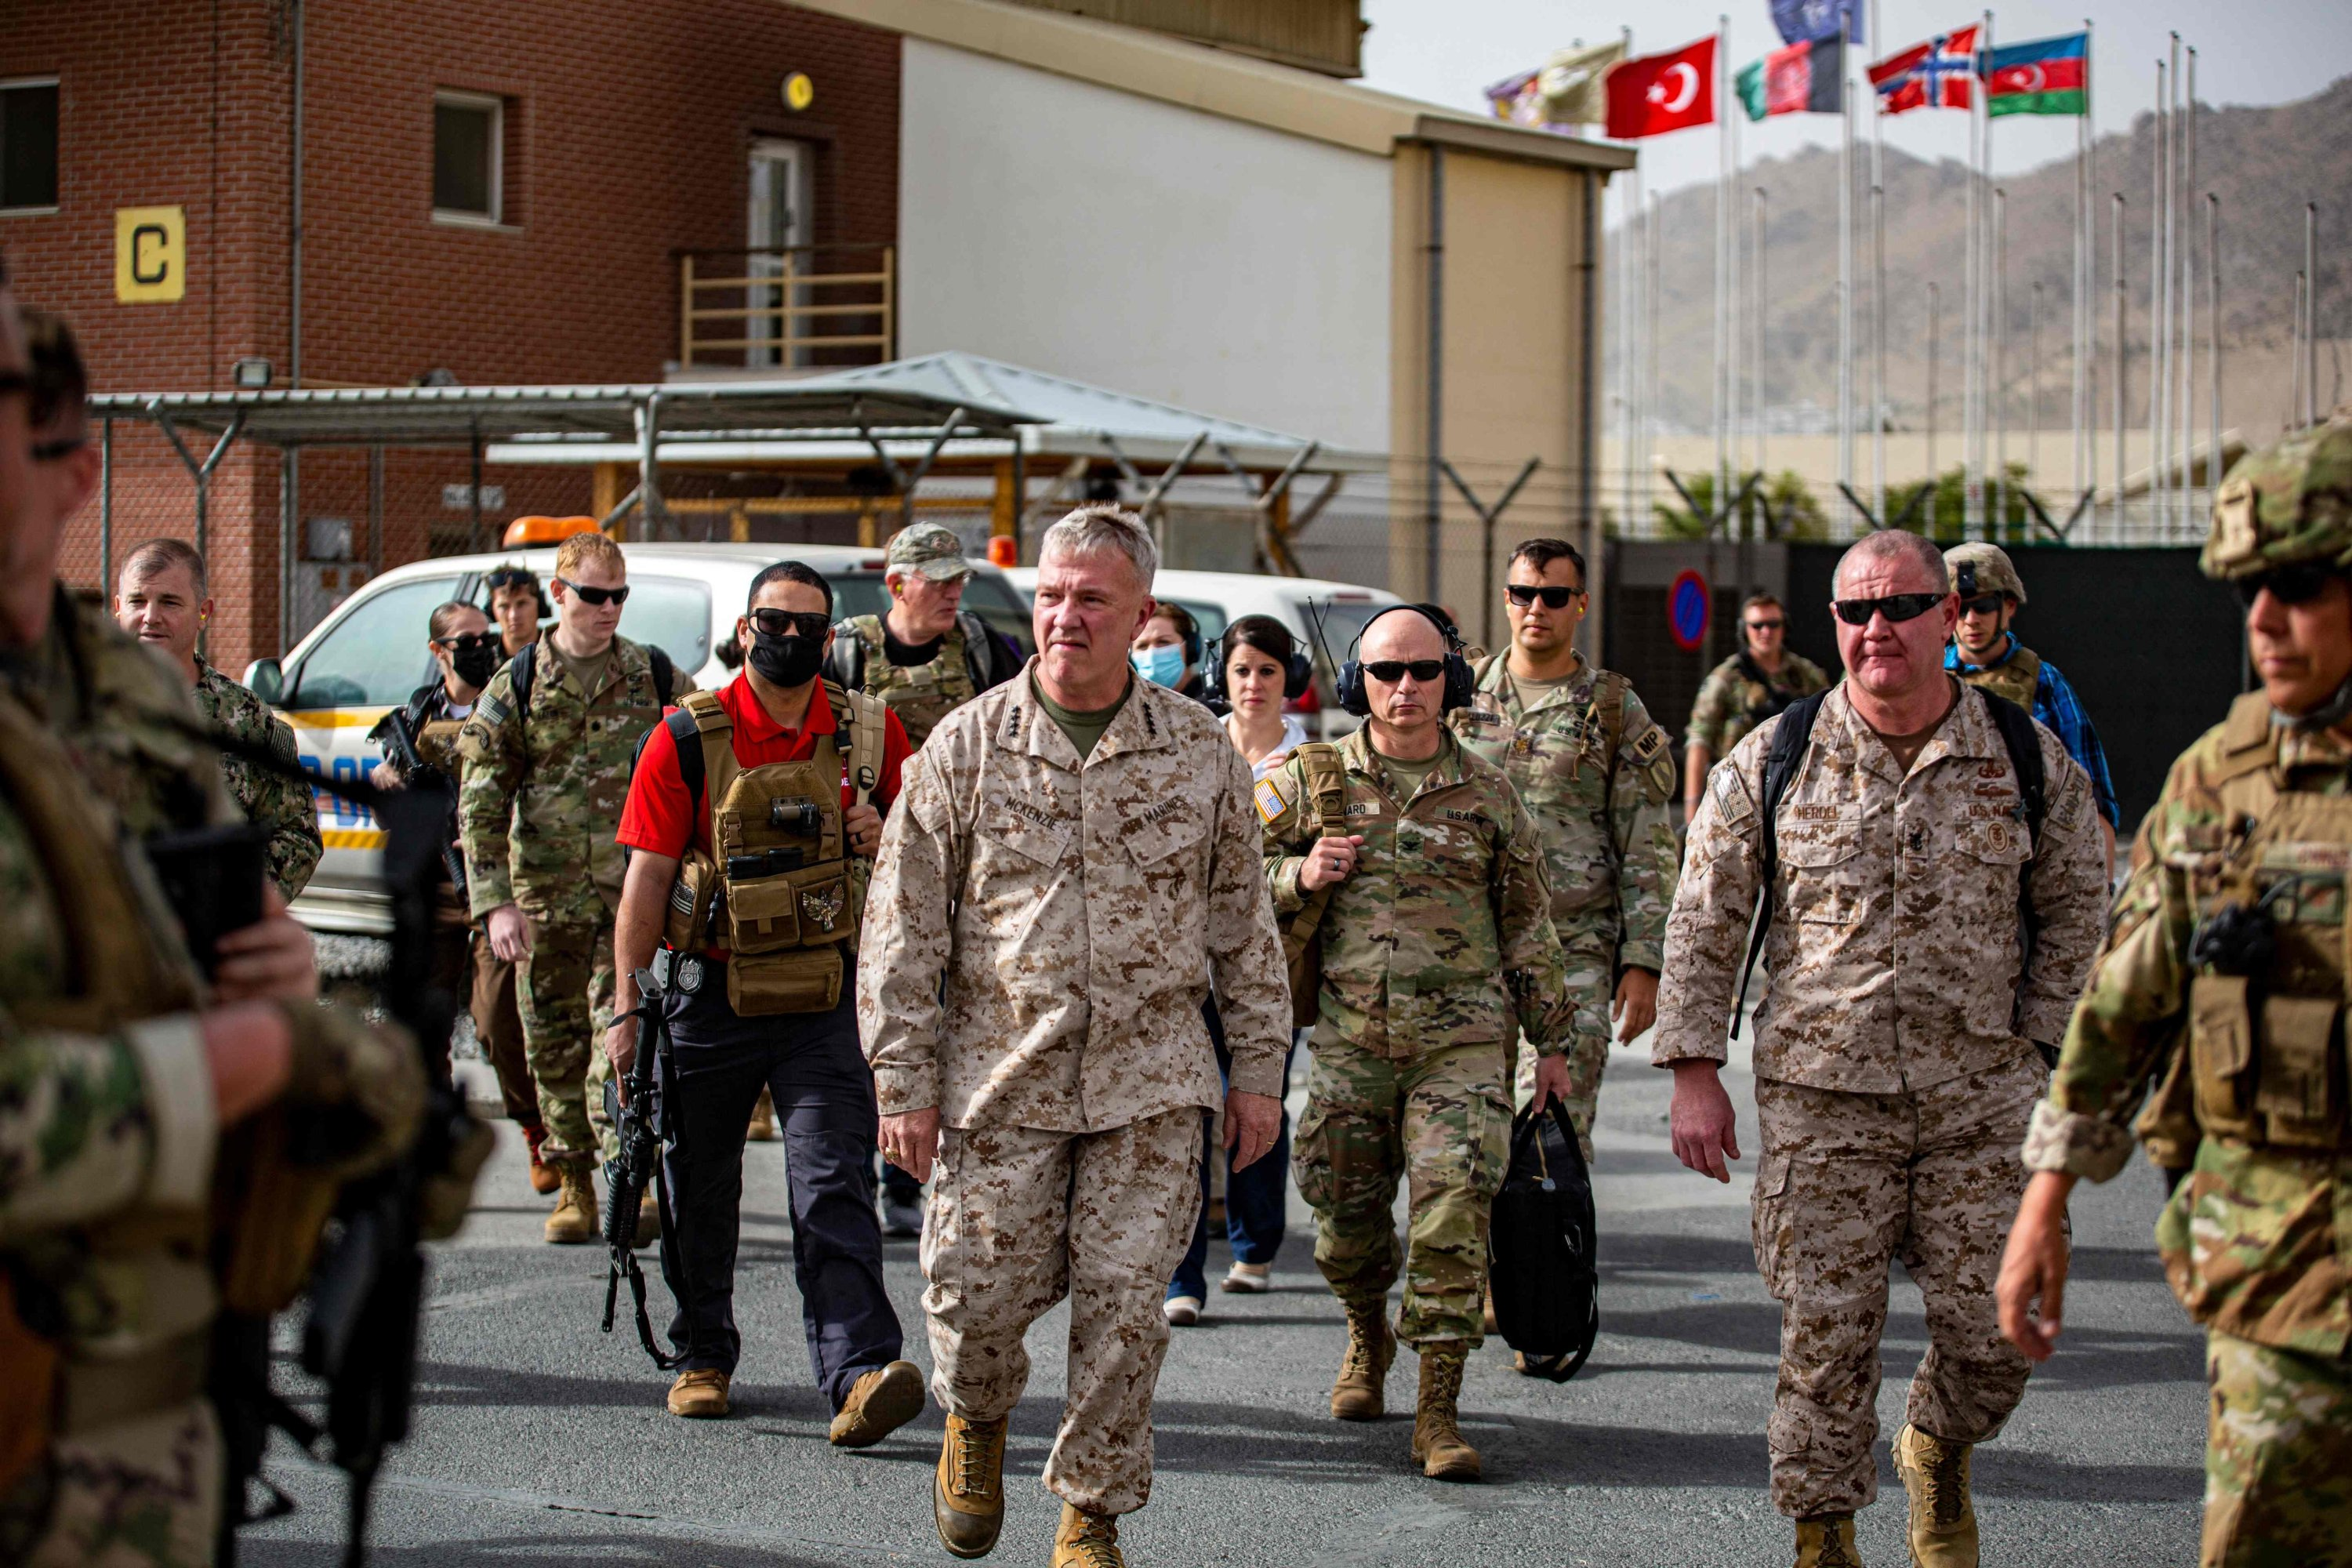 Commanding General of the U.S. Central Command Kenneth F. McKenzie touring an evacuation control center at Kabul Hamid Karzai International Airport, Afghanistan, Aug. 17, 2021. (AFP Photo)